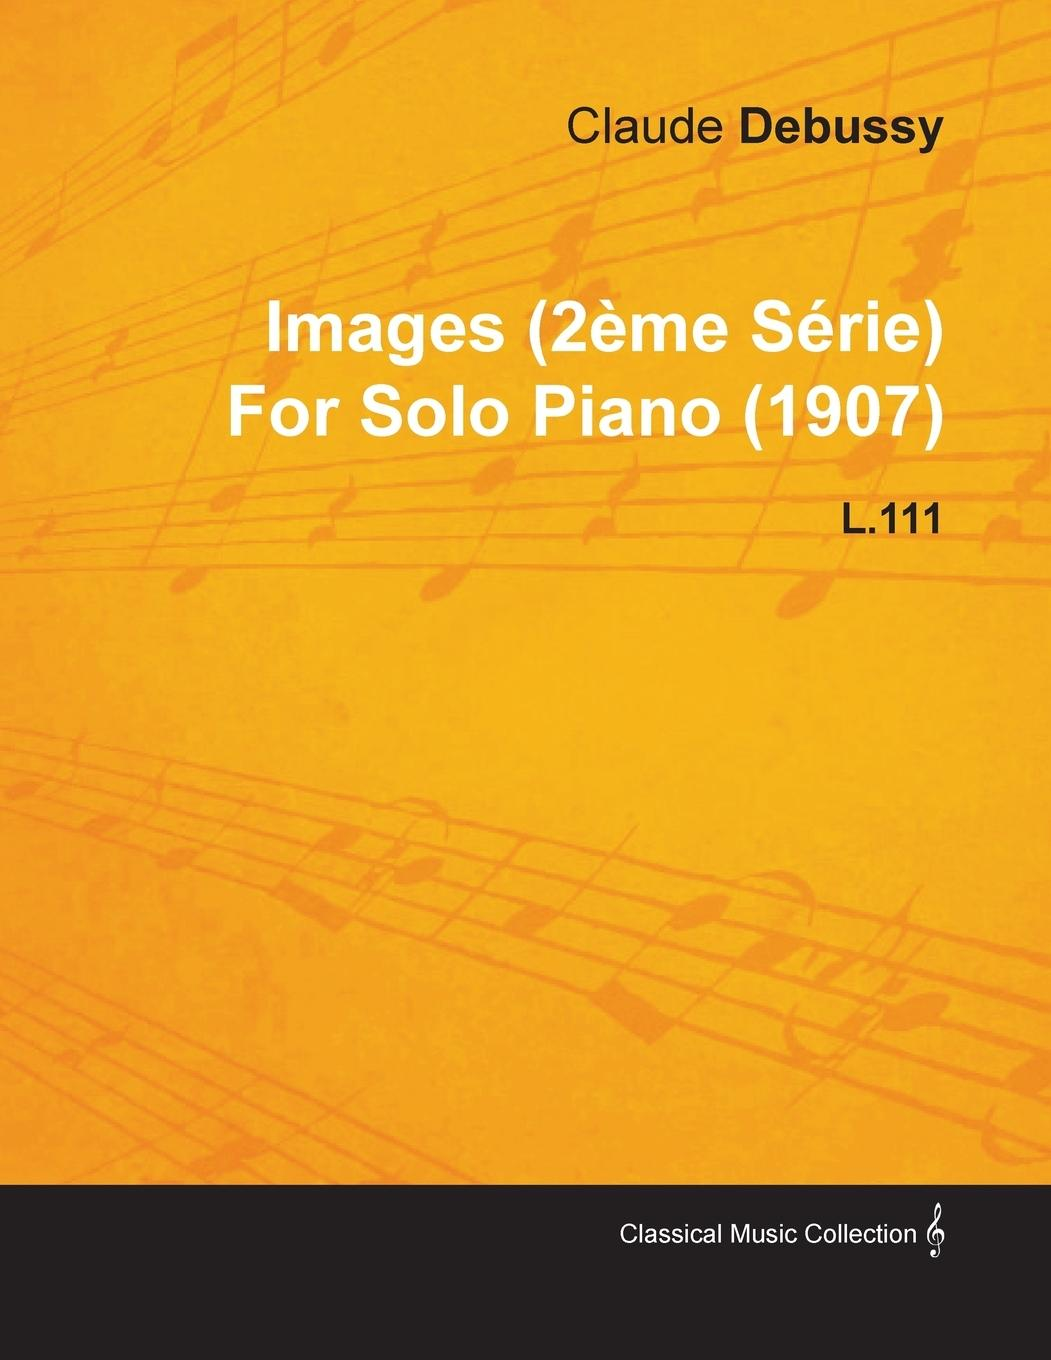 Images (2 Me S Rie) by Claude Debussy for Solo Piano (1907) L.111 - Debussy, Claude